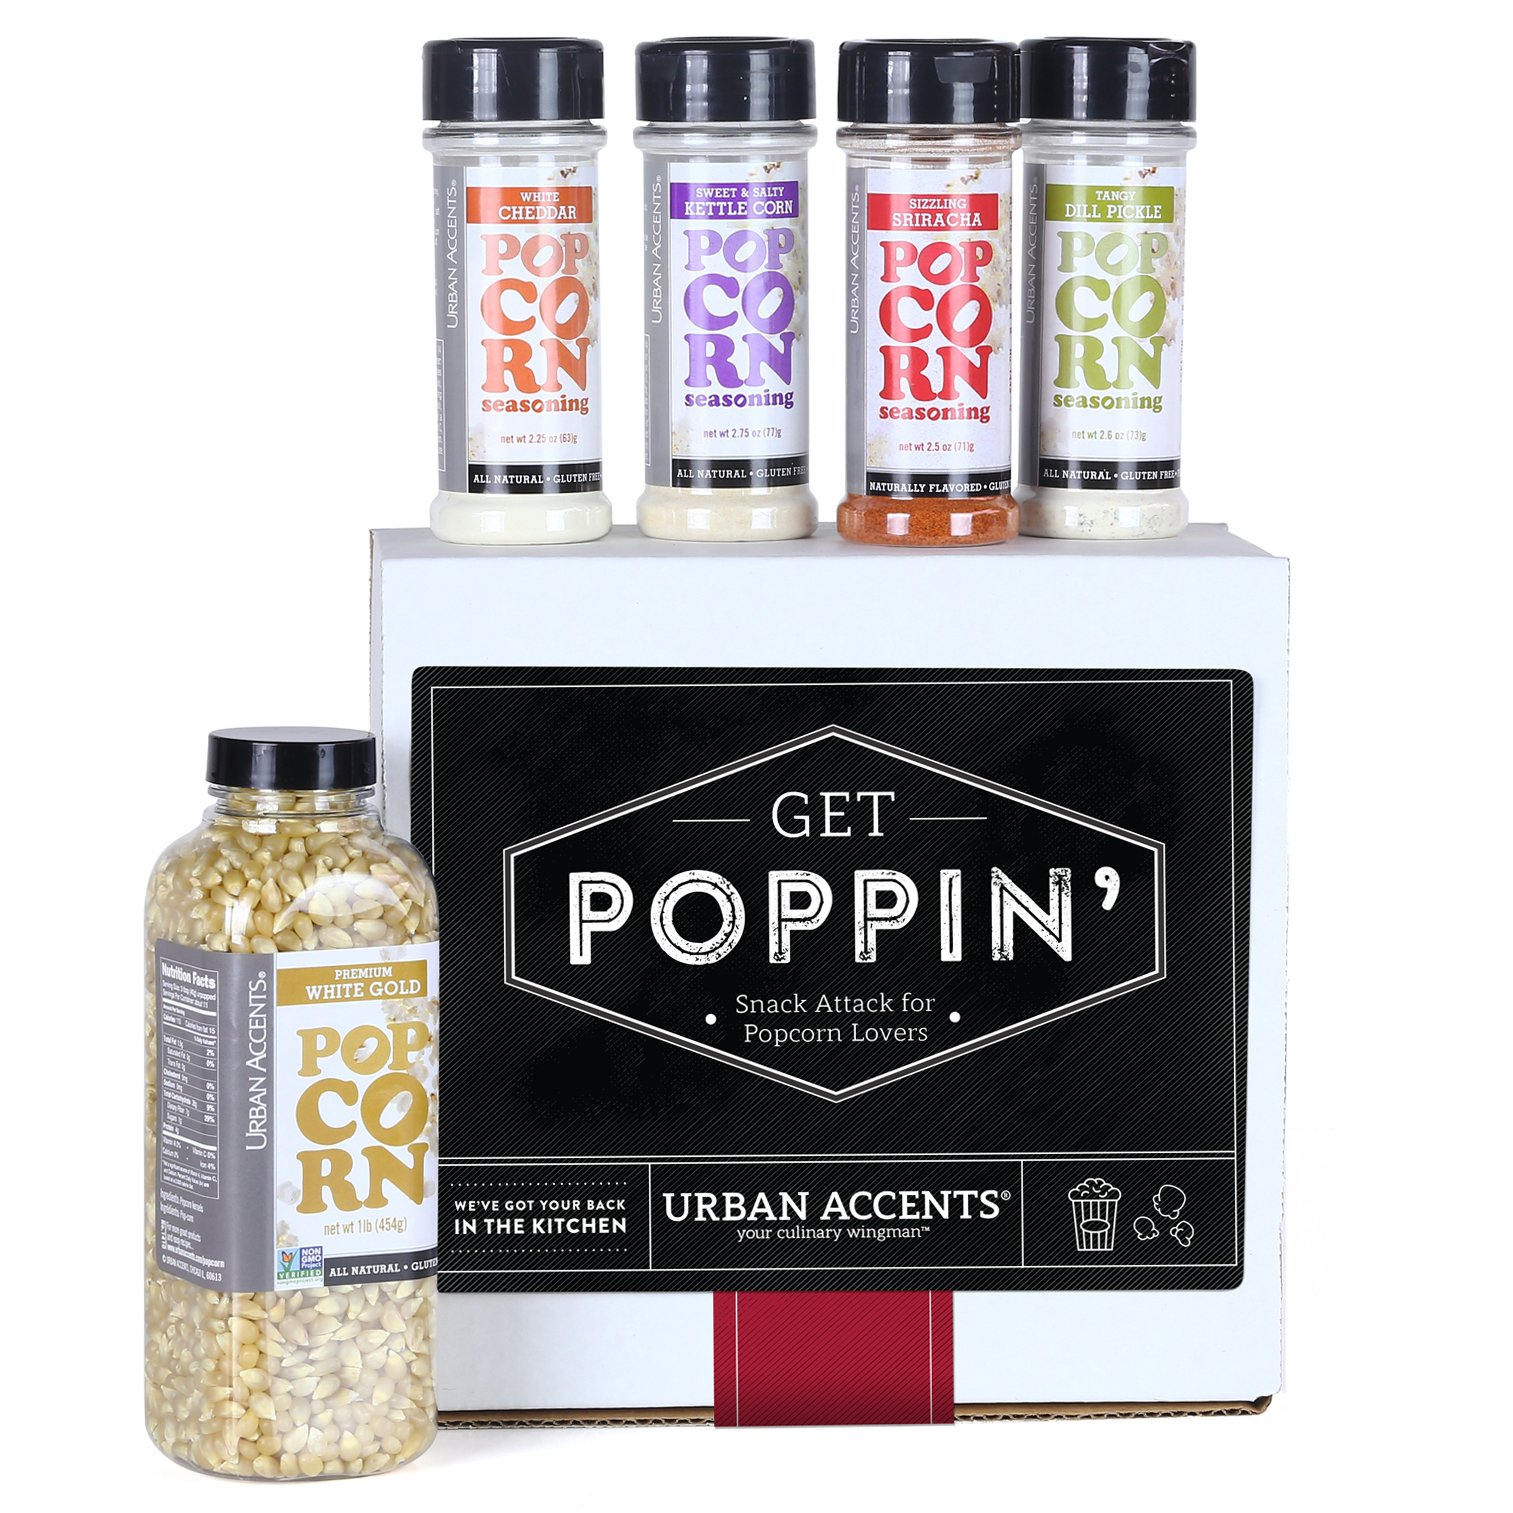 Urban Accents GET POPPIN' Snack Attack for Popcorn Lovers Gift Set, Hostess Gift For Any Occasion